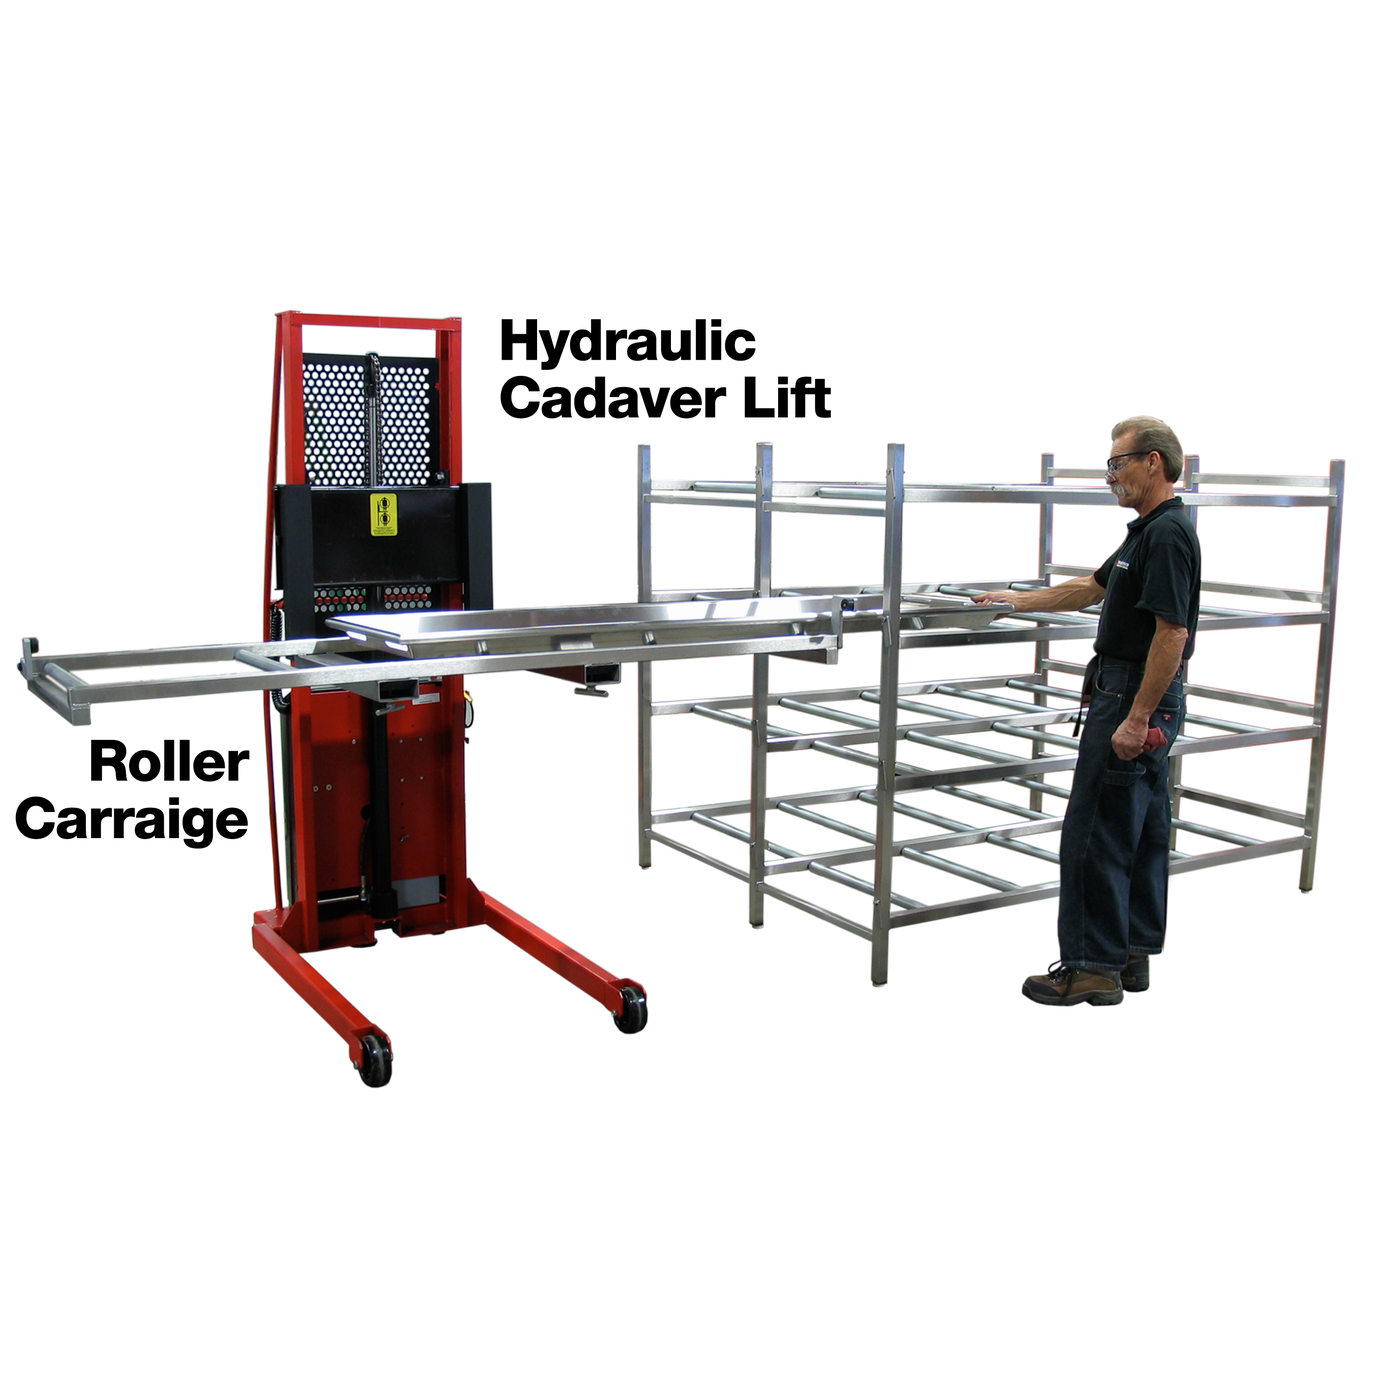 Mortuary Rack System with Full Rollers-Cadaver Handling & Storage Systems-Mortech Manufacturing Company Inc. Quality Stainless Steel Autopsy, Morgue, Funeral Home, Necropsy, Veterinary / Anatomy, Dissection Equipment and Accessories